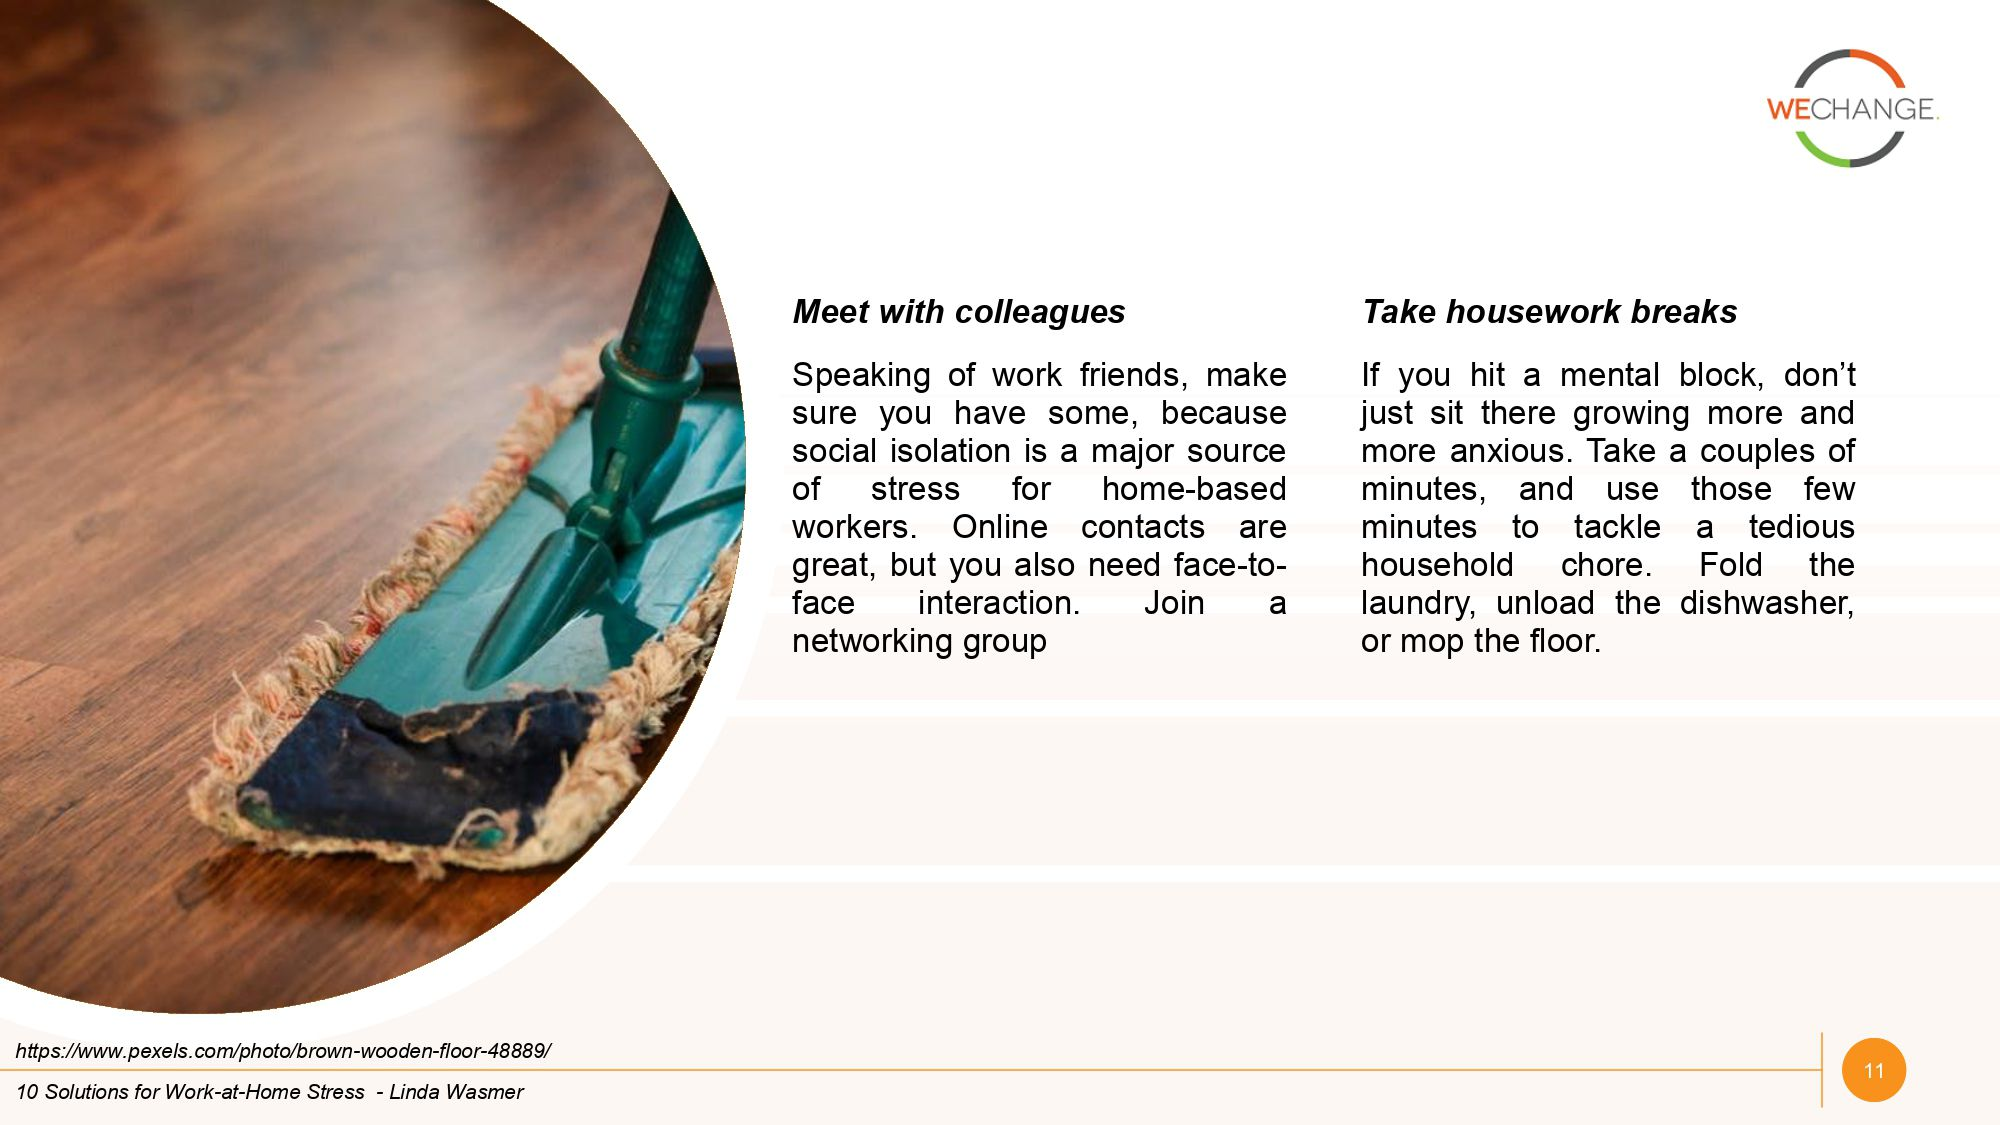 How to deal with employees stress of working from home in corona virus days page 0011 compressed How to deal with employees stress of working from home in corona virus days?